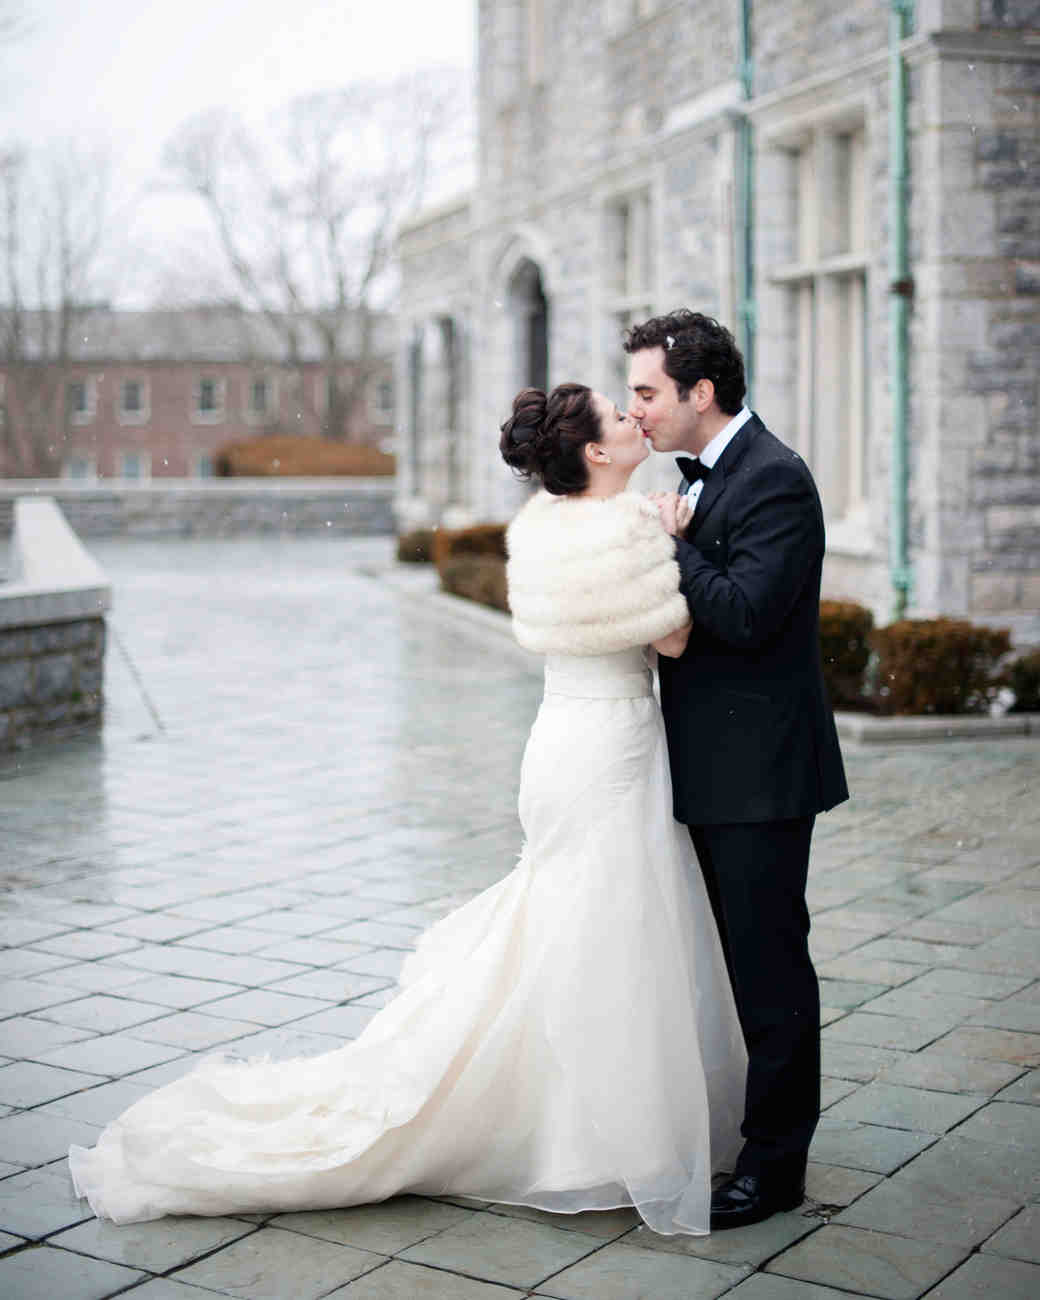 Vintage Wedding Dresses Nyc: An Intimate, Formal Winter Wedding In Connecticut